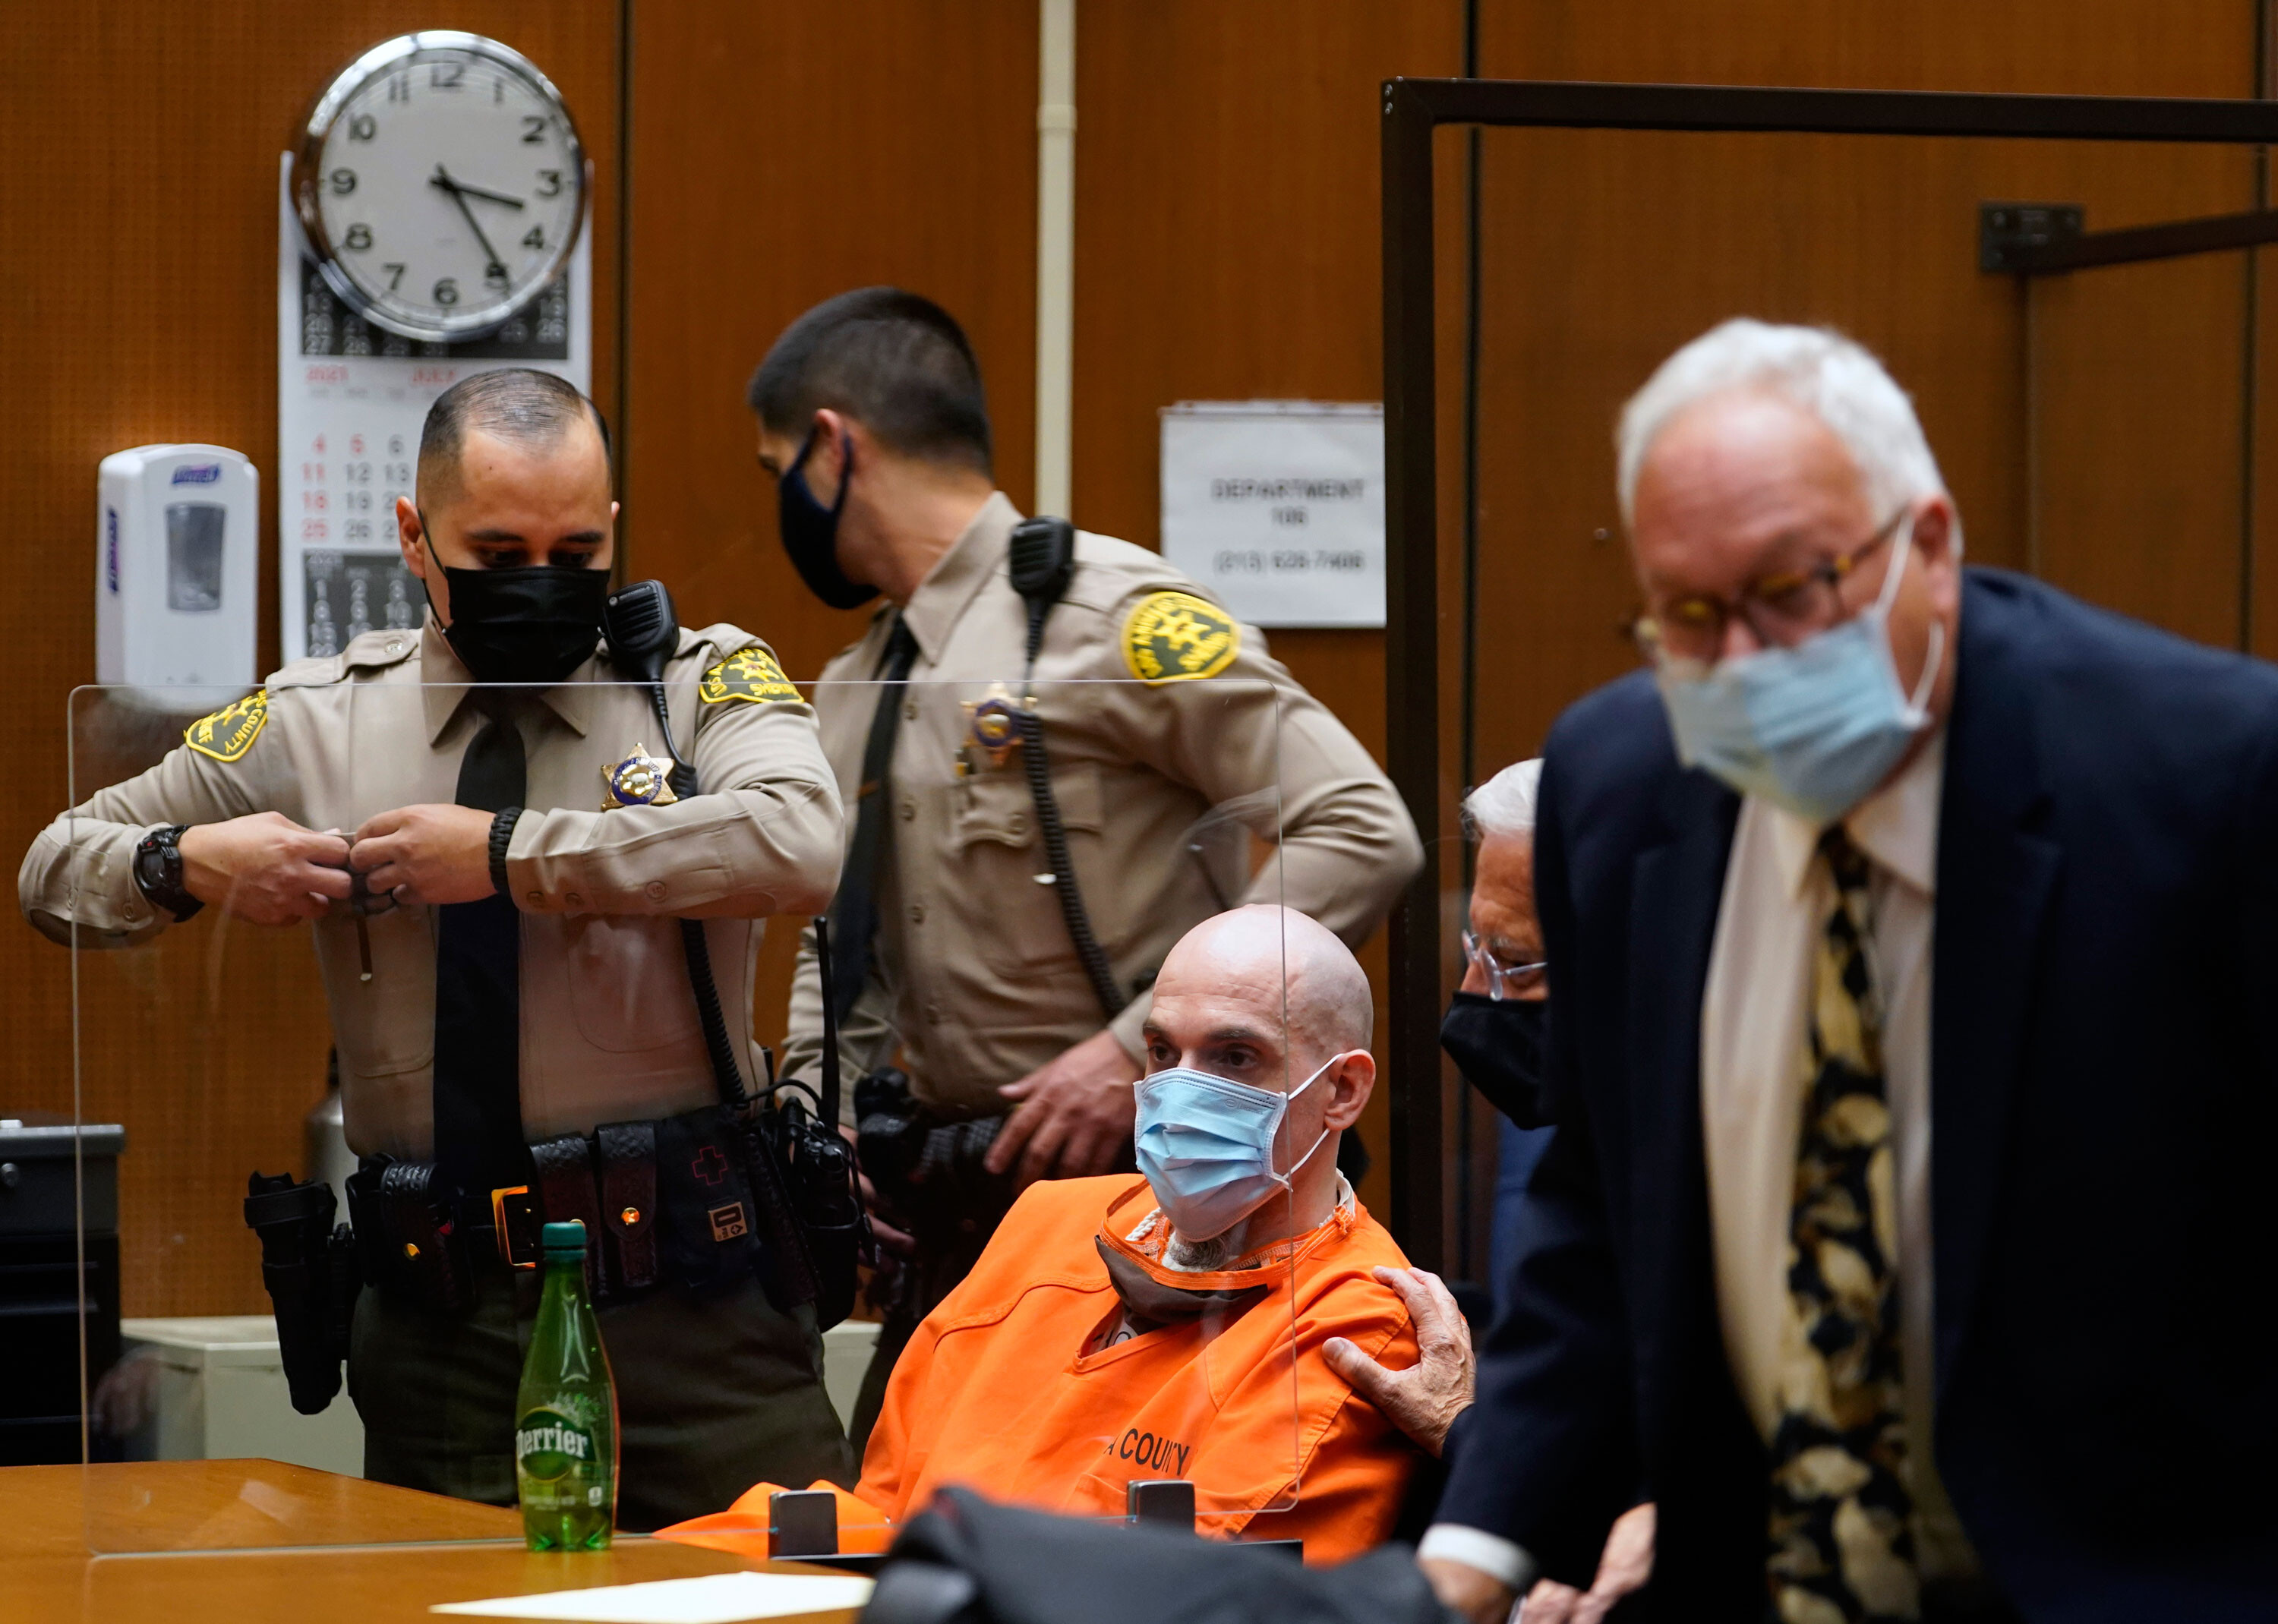 'Hollywood Ripper' serial killer sentenced to death for the murders of 2 women and attempted murder of another